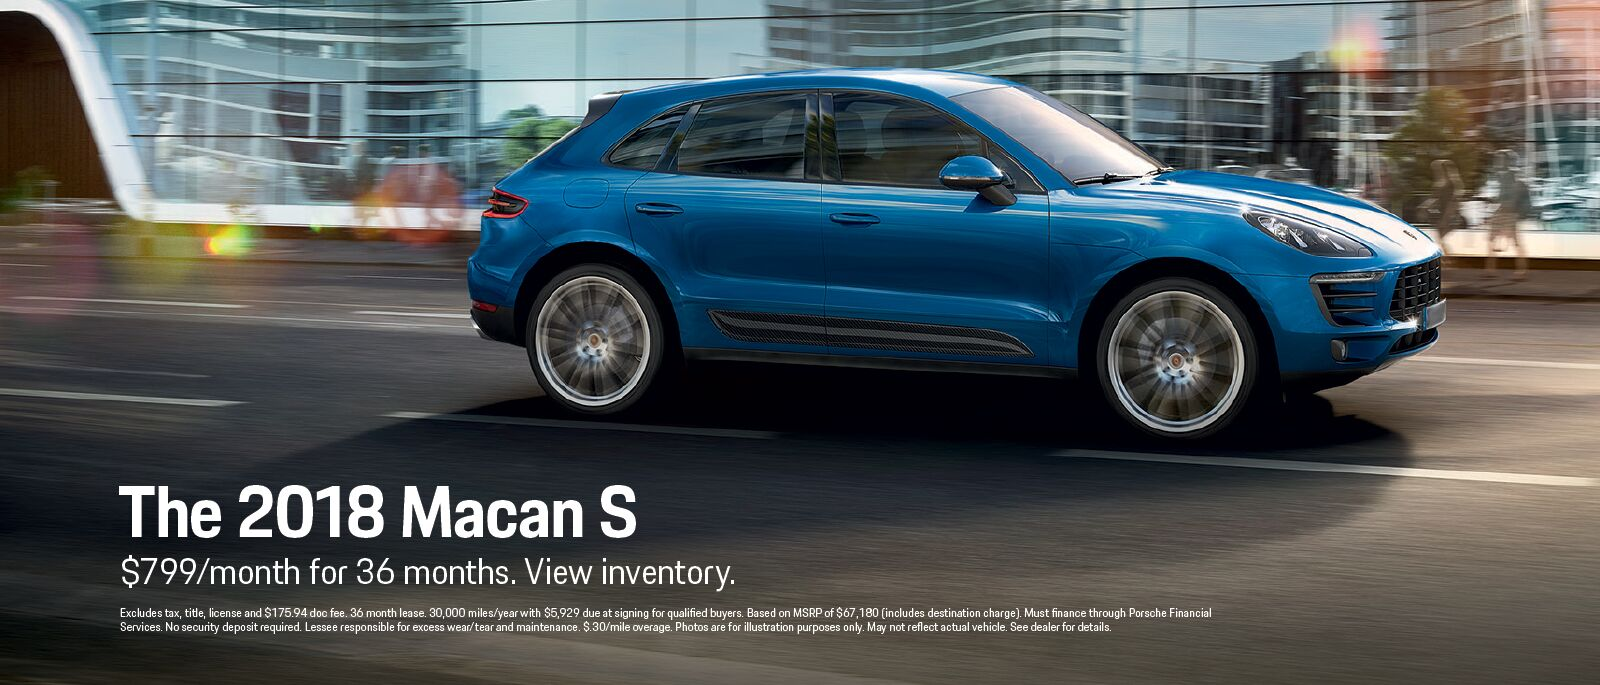 The 2018 Macan S